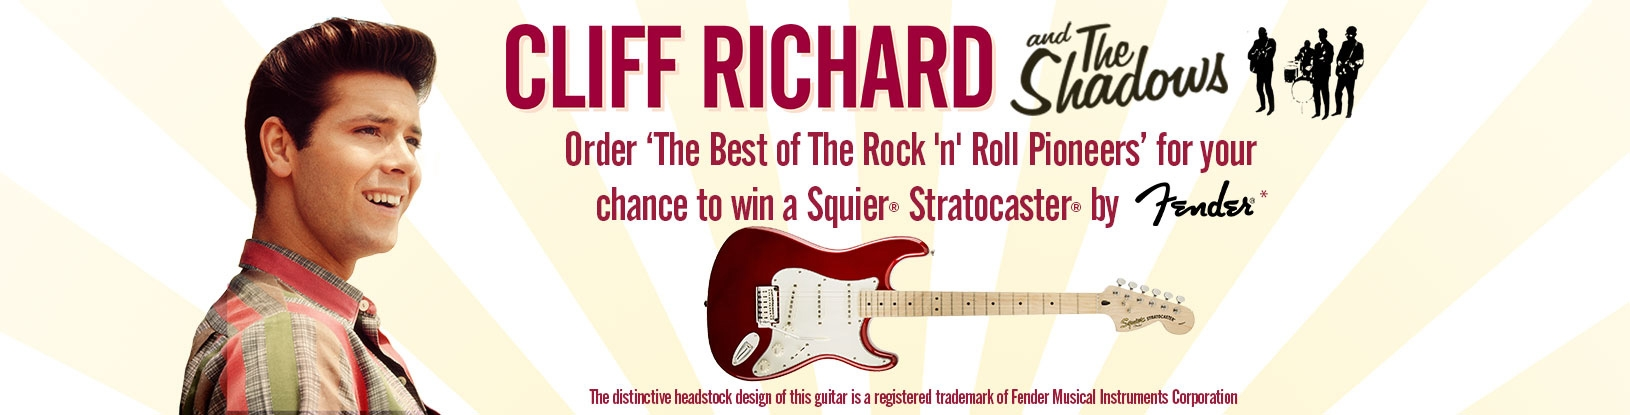 Cliff Richard and the Shadows - Order the best of the Rock 'n' Roll pioneers for your chance to win a Squier Stratocaster by Fender